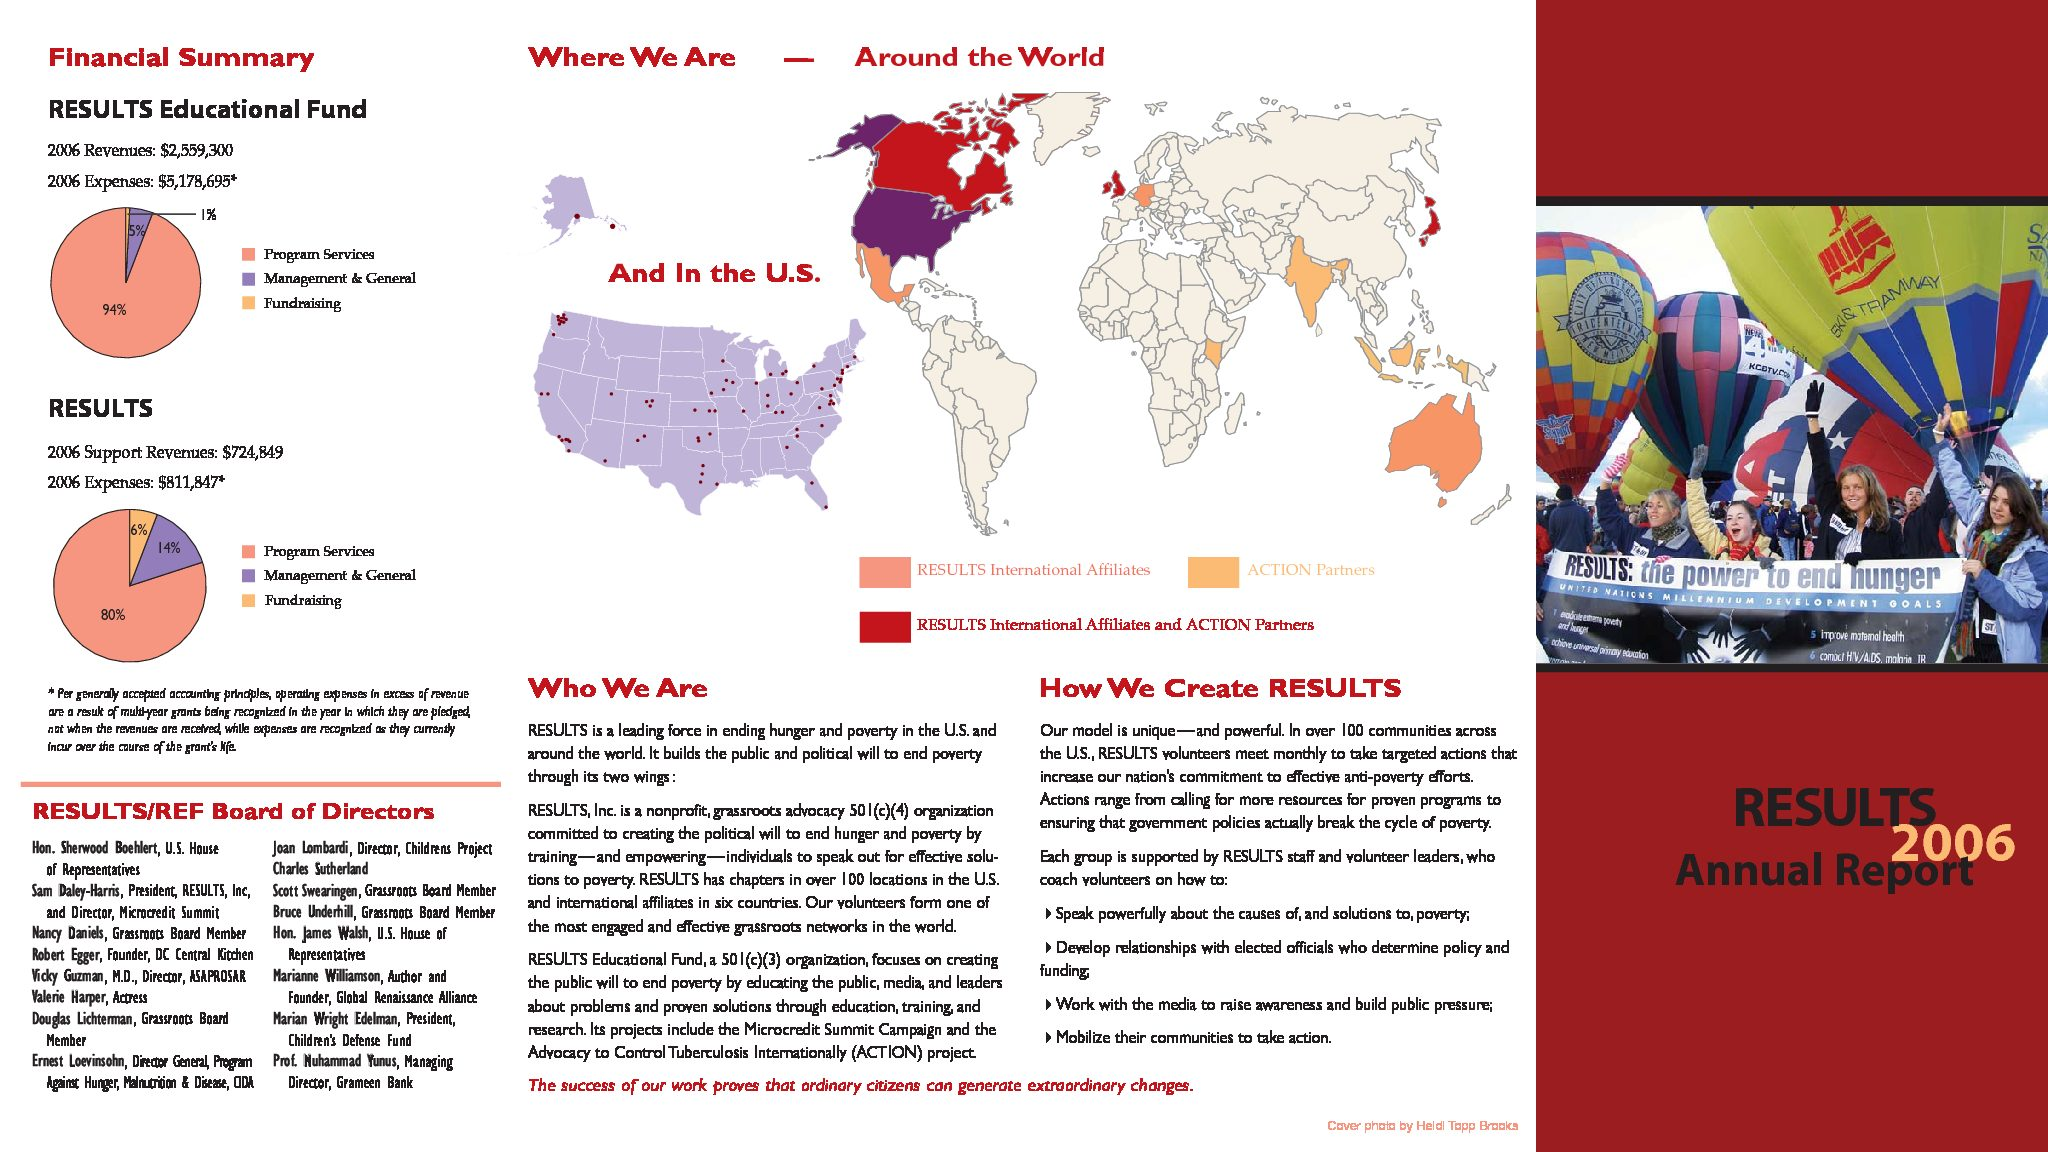 2006 Annual Report Brochure